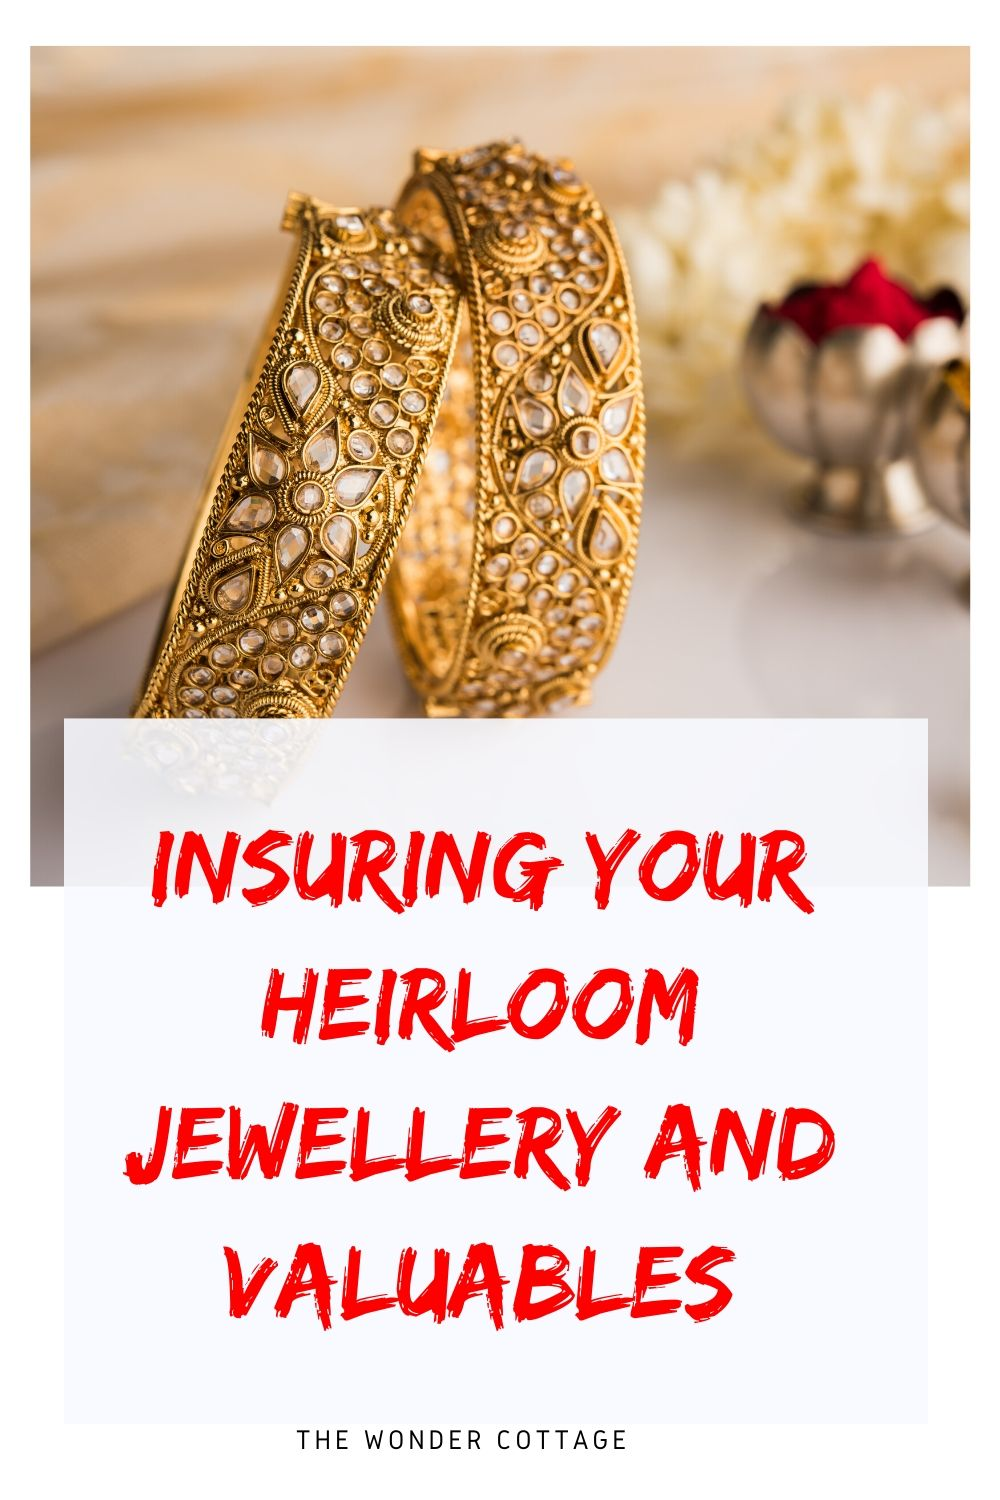 insuring your heirloom jewellery and valuables